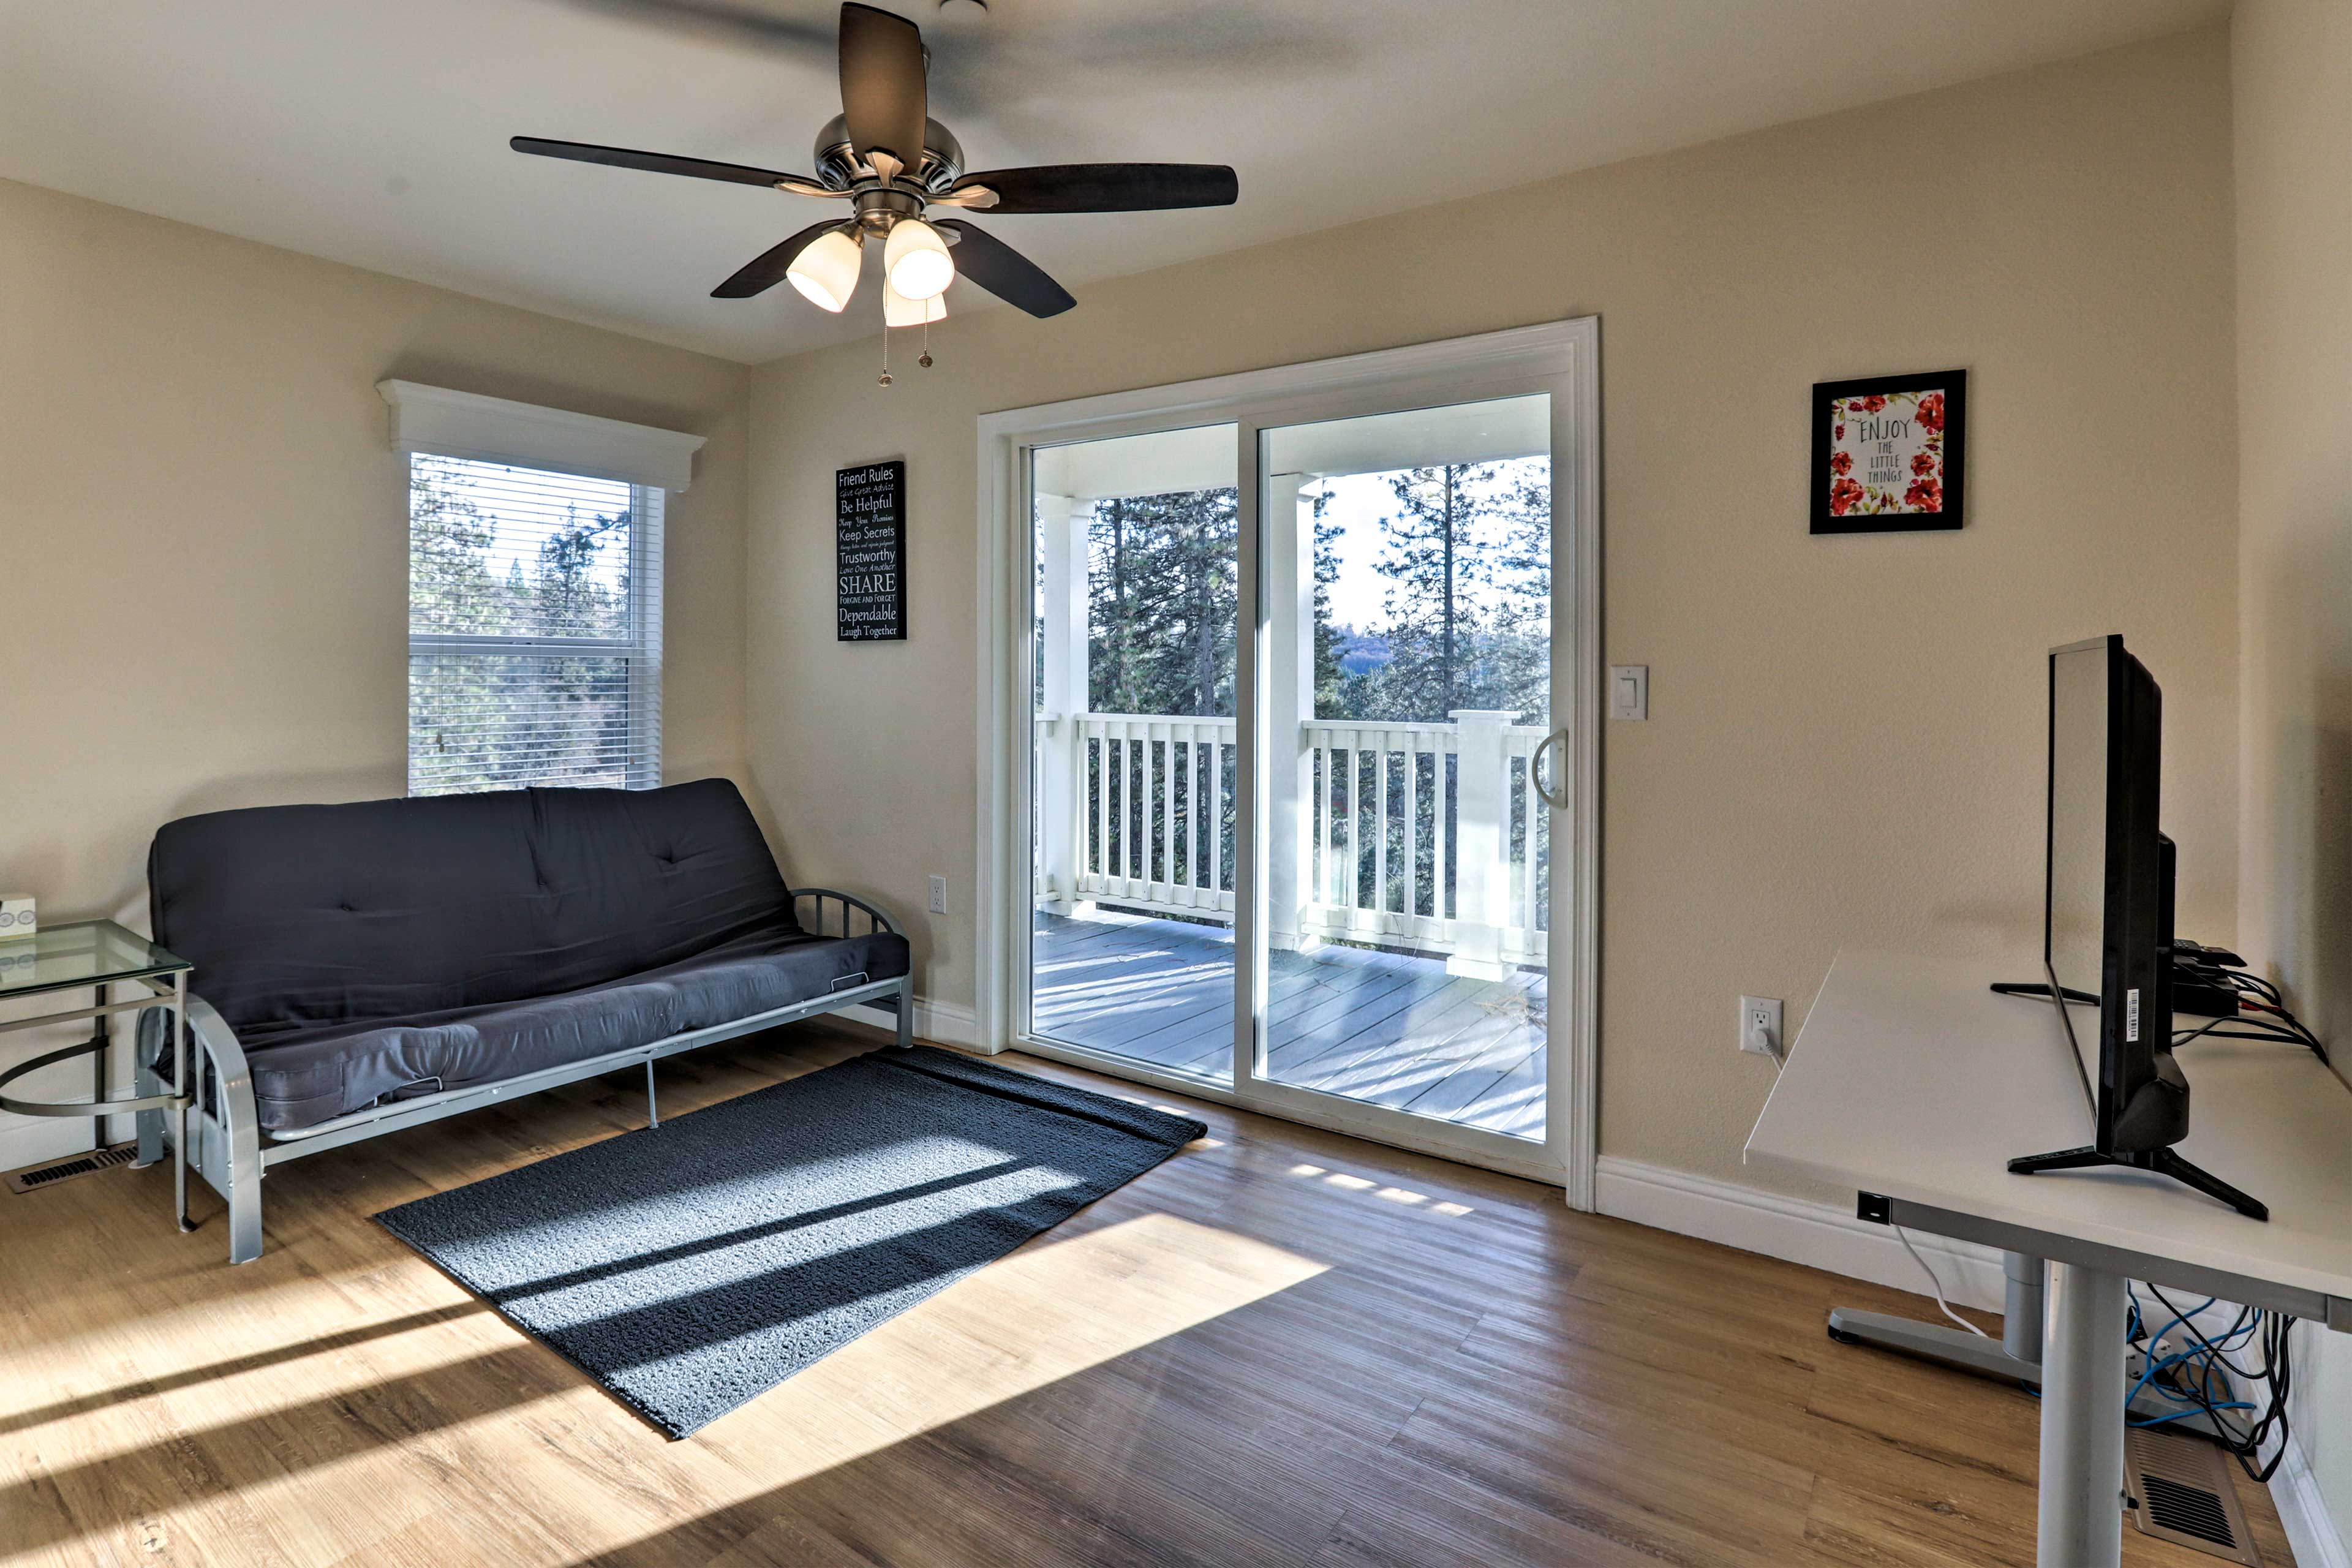 Open the sliding doors and step out onto the balcony.